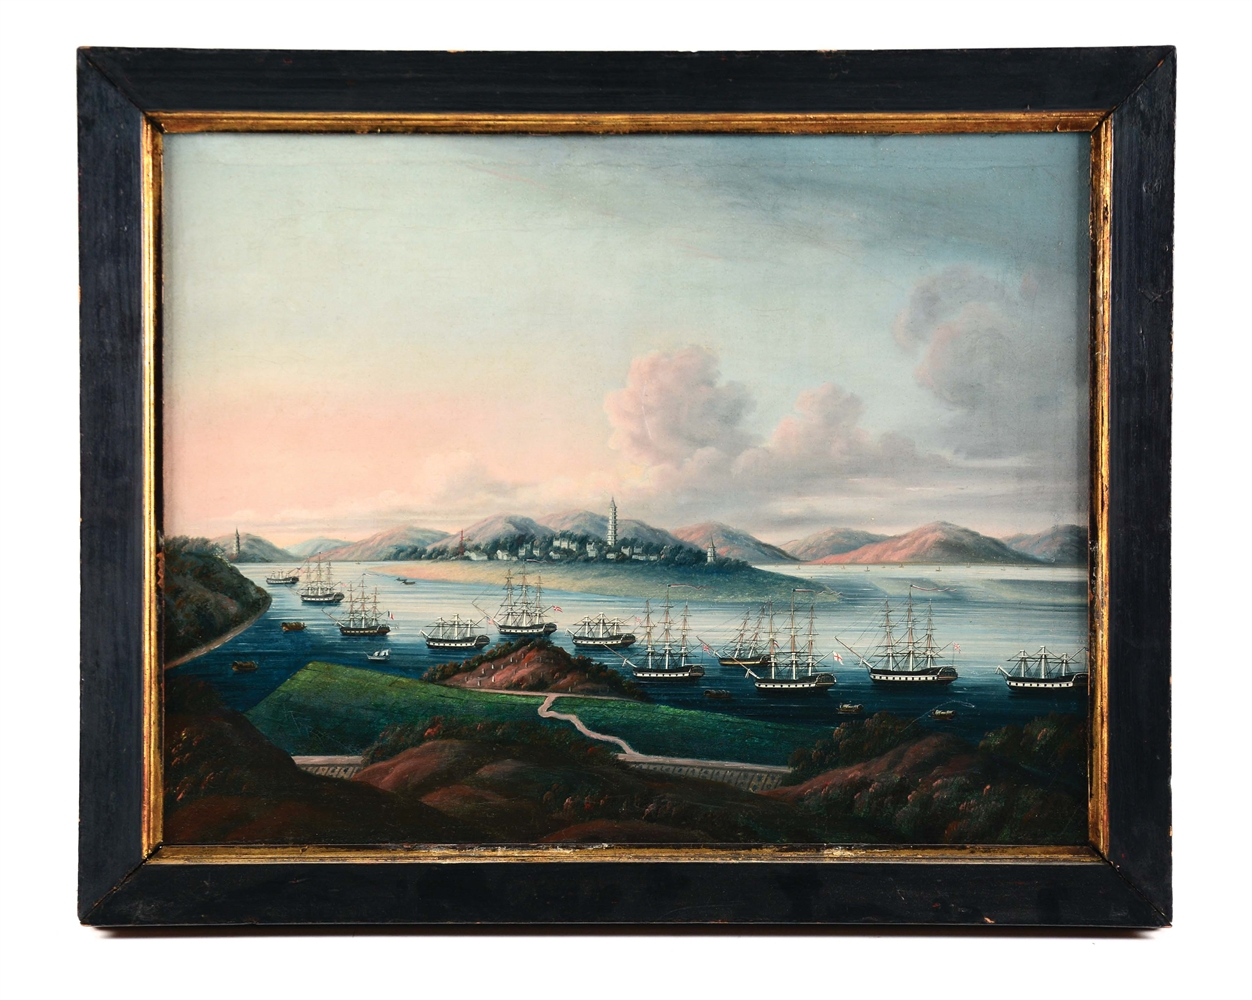 OIL ON CANVAS CHINESE EXPORT PAINTING OF WAMPOA REACH CHINA CIRCA 1830.